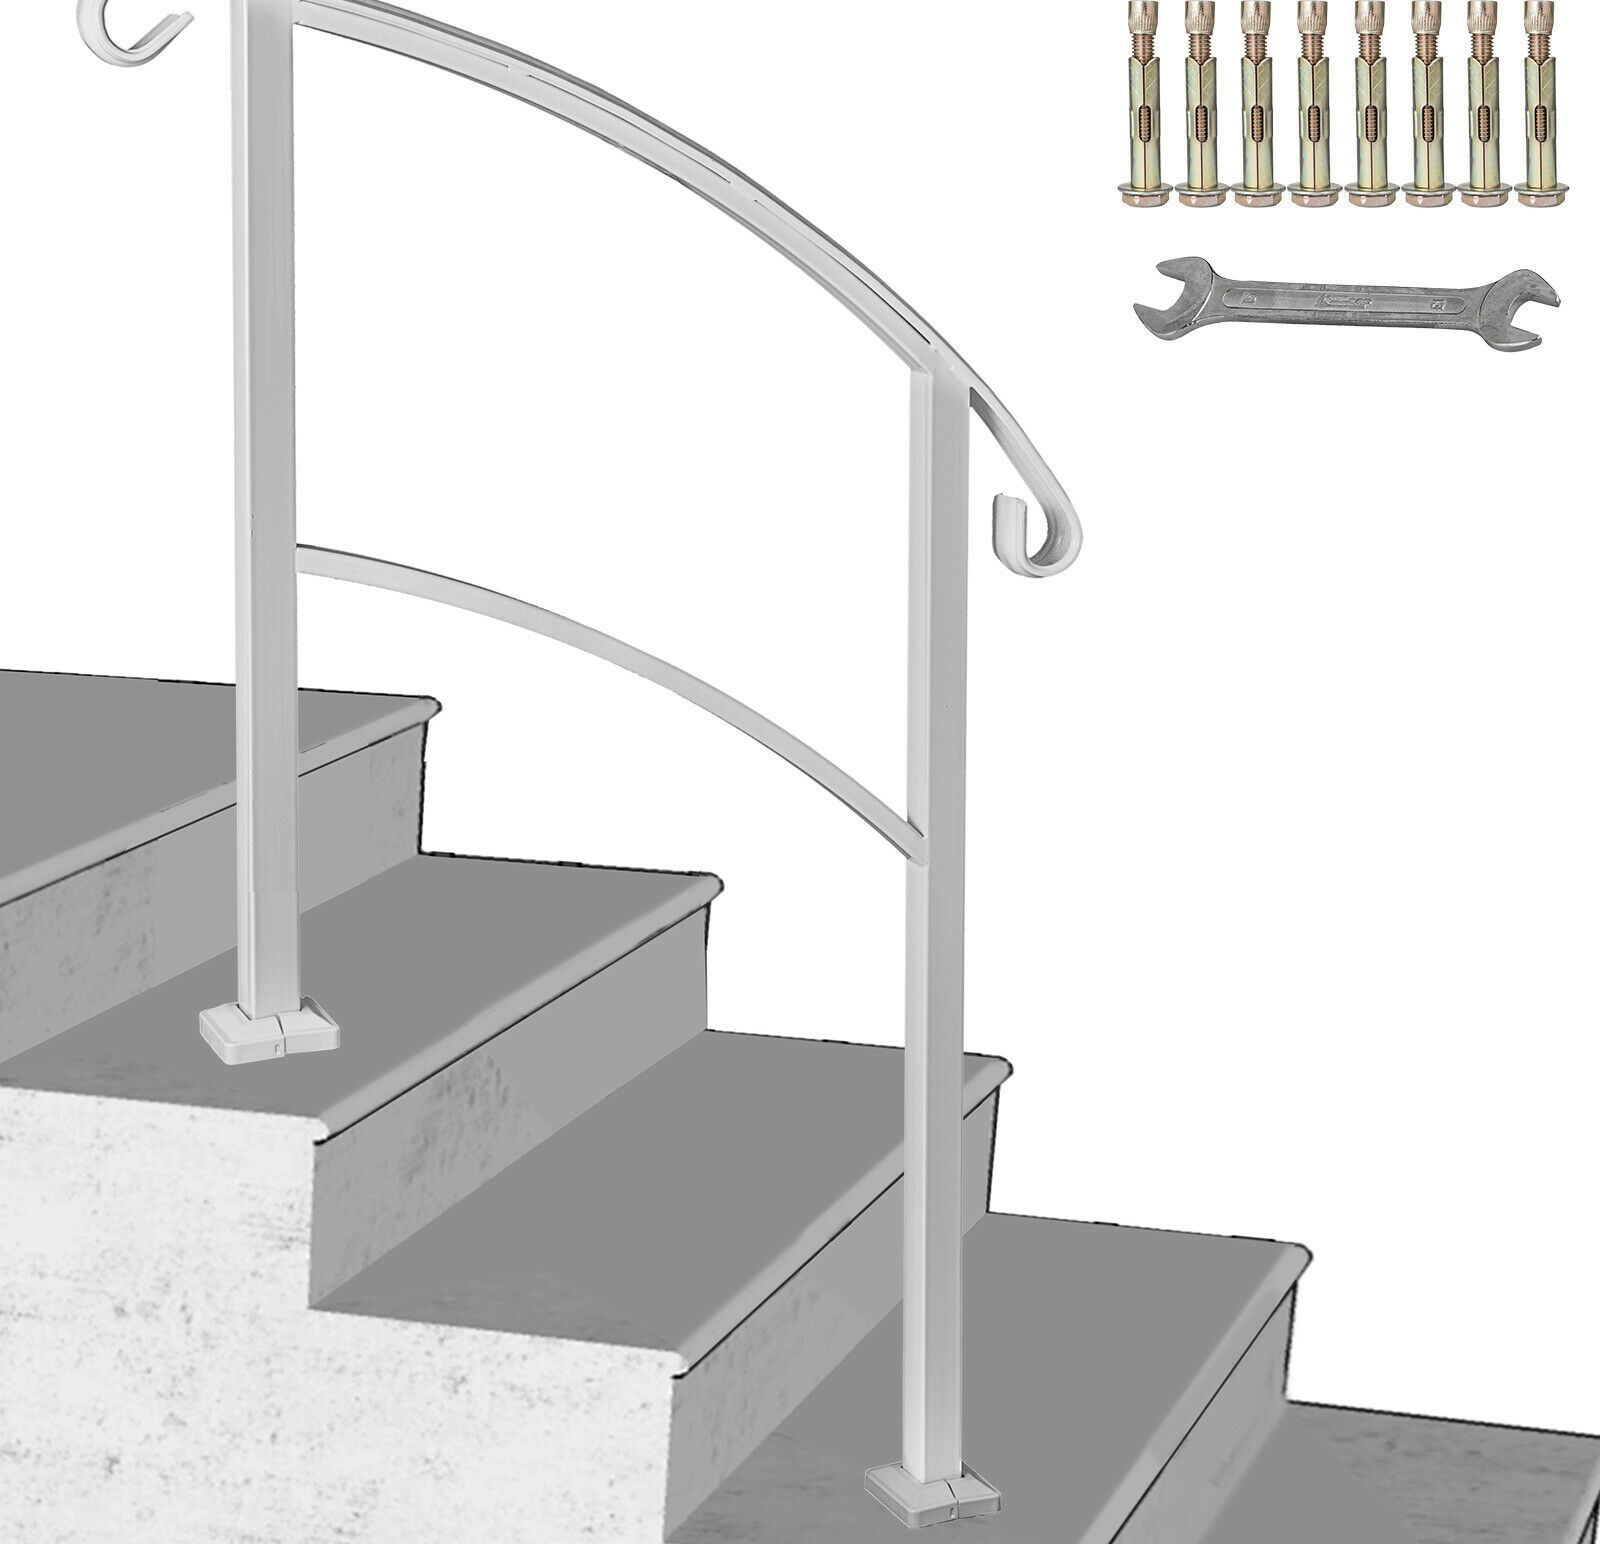 Iron Step Handrail Stair Railing Kit For 3 Step Handrail Outdoor | 3 Step Outdoor Stairs | Wrap Around | Prefab | Outdoor Shed | Framing | Concrete